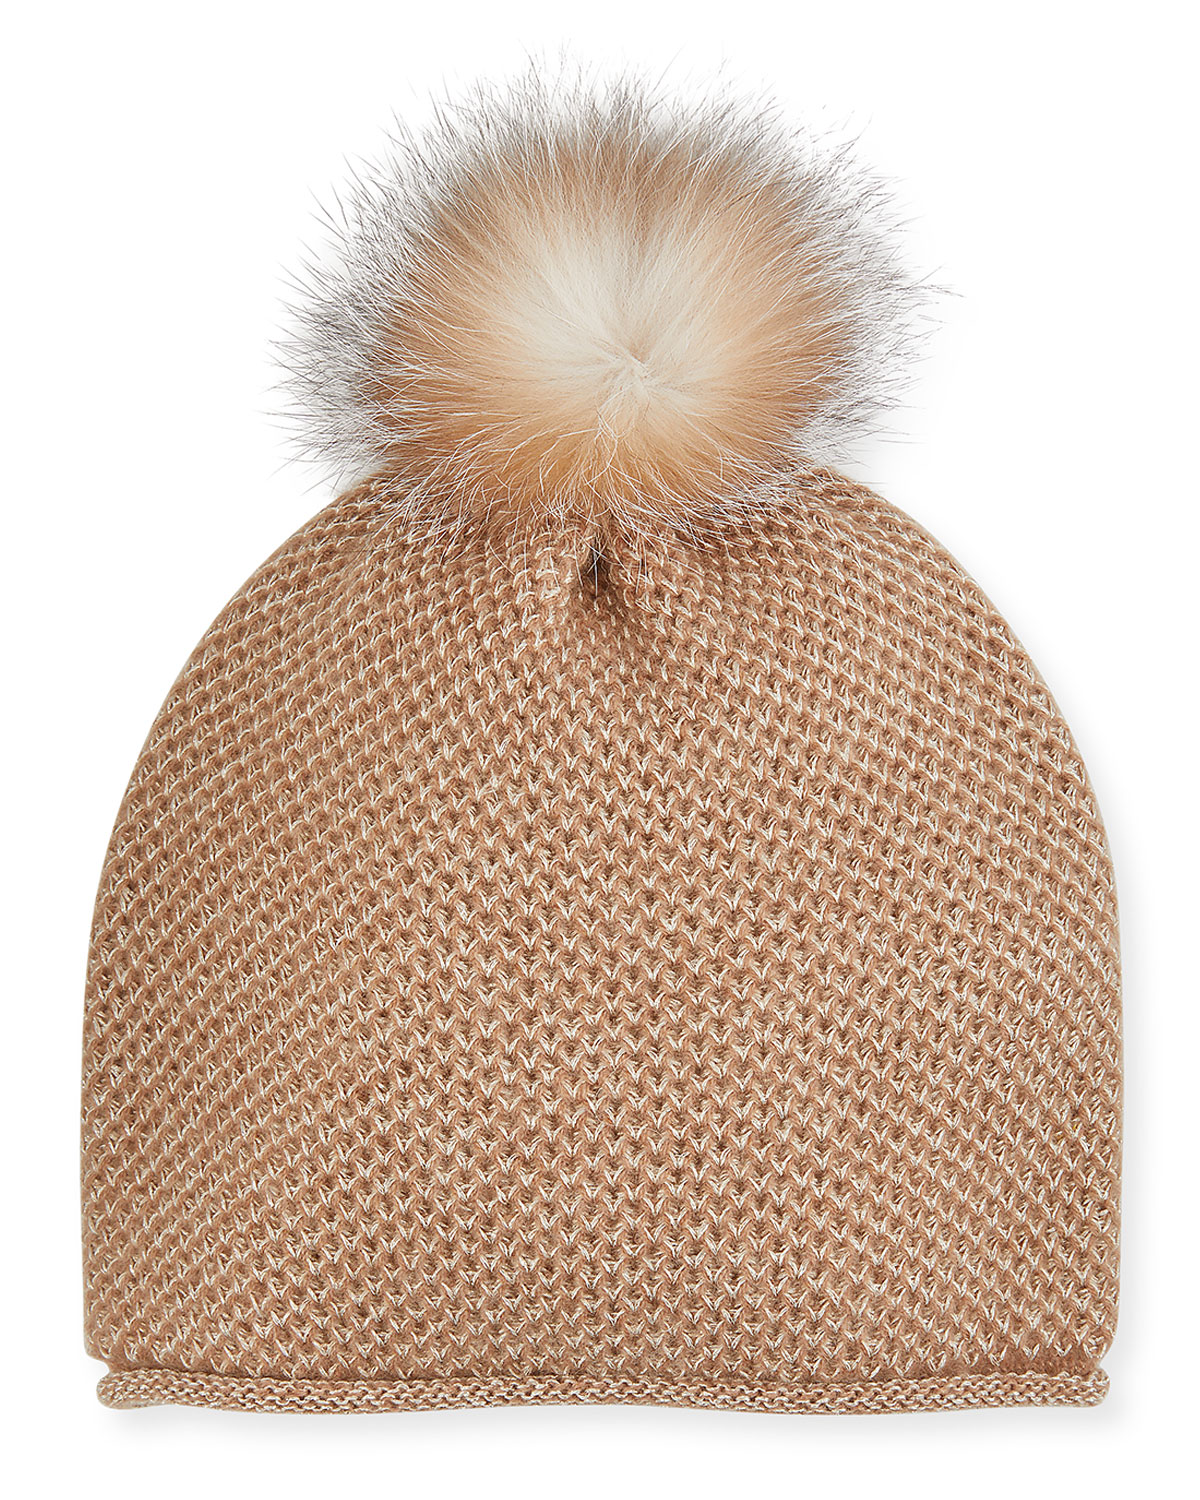 Sofia Cashmere HONEYCOMB METALLIC KNIT BEANIE WITH FUR POMPOM